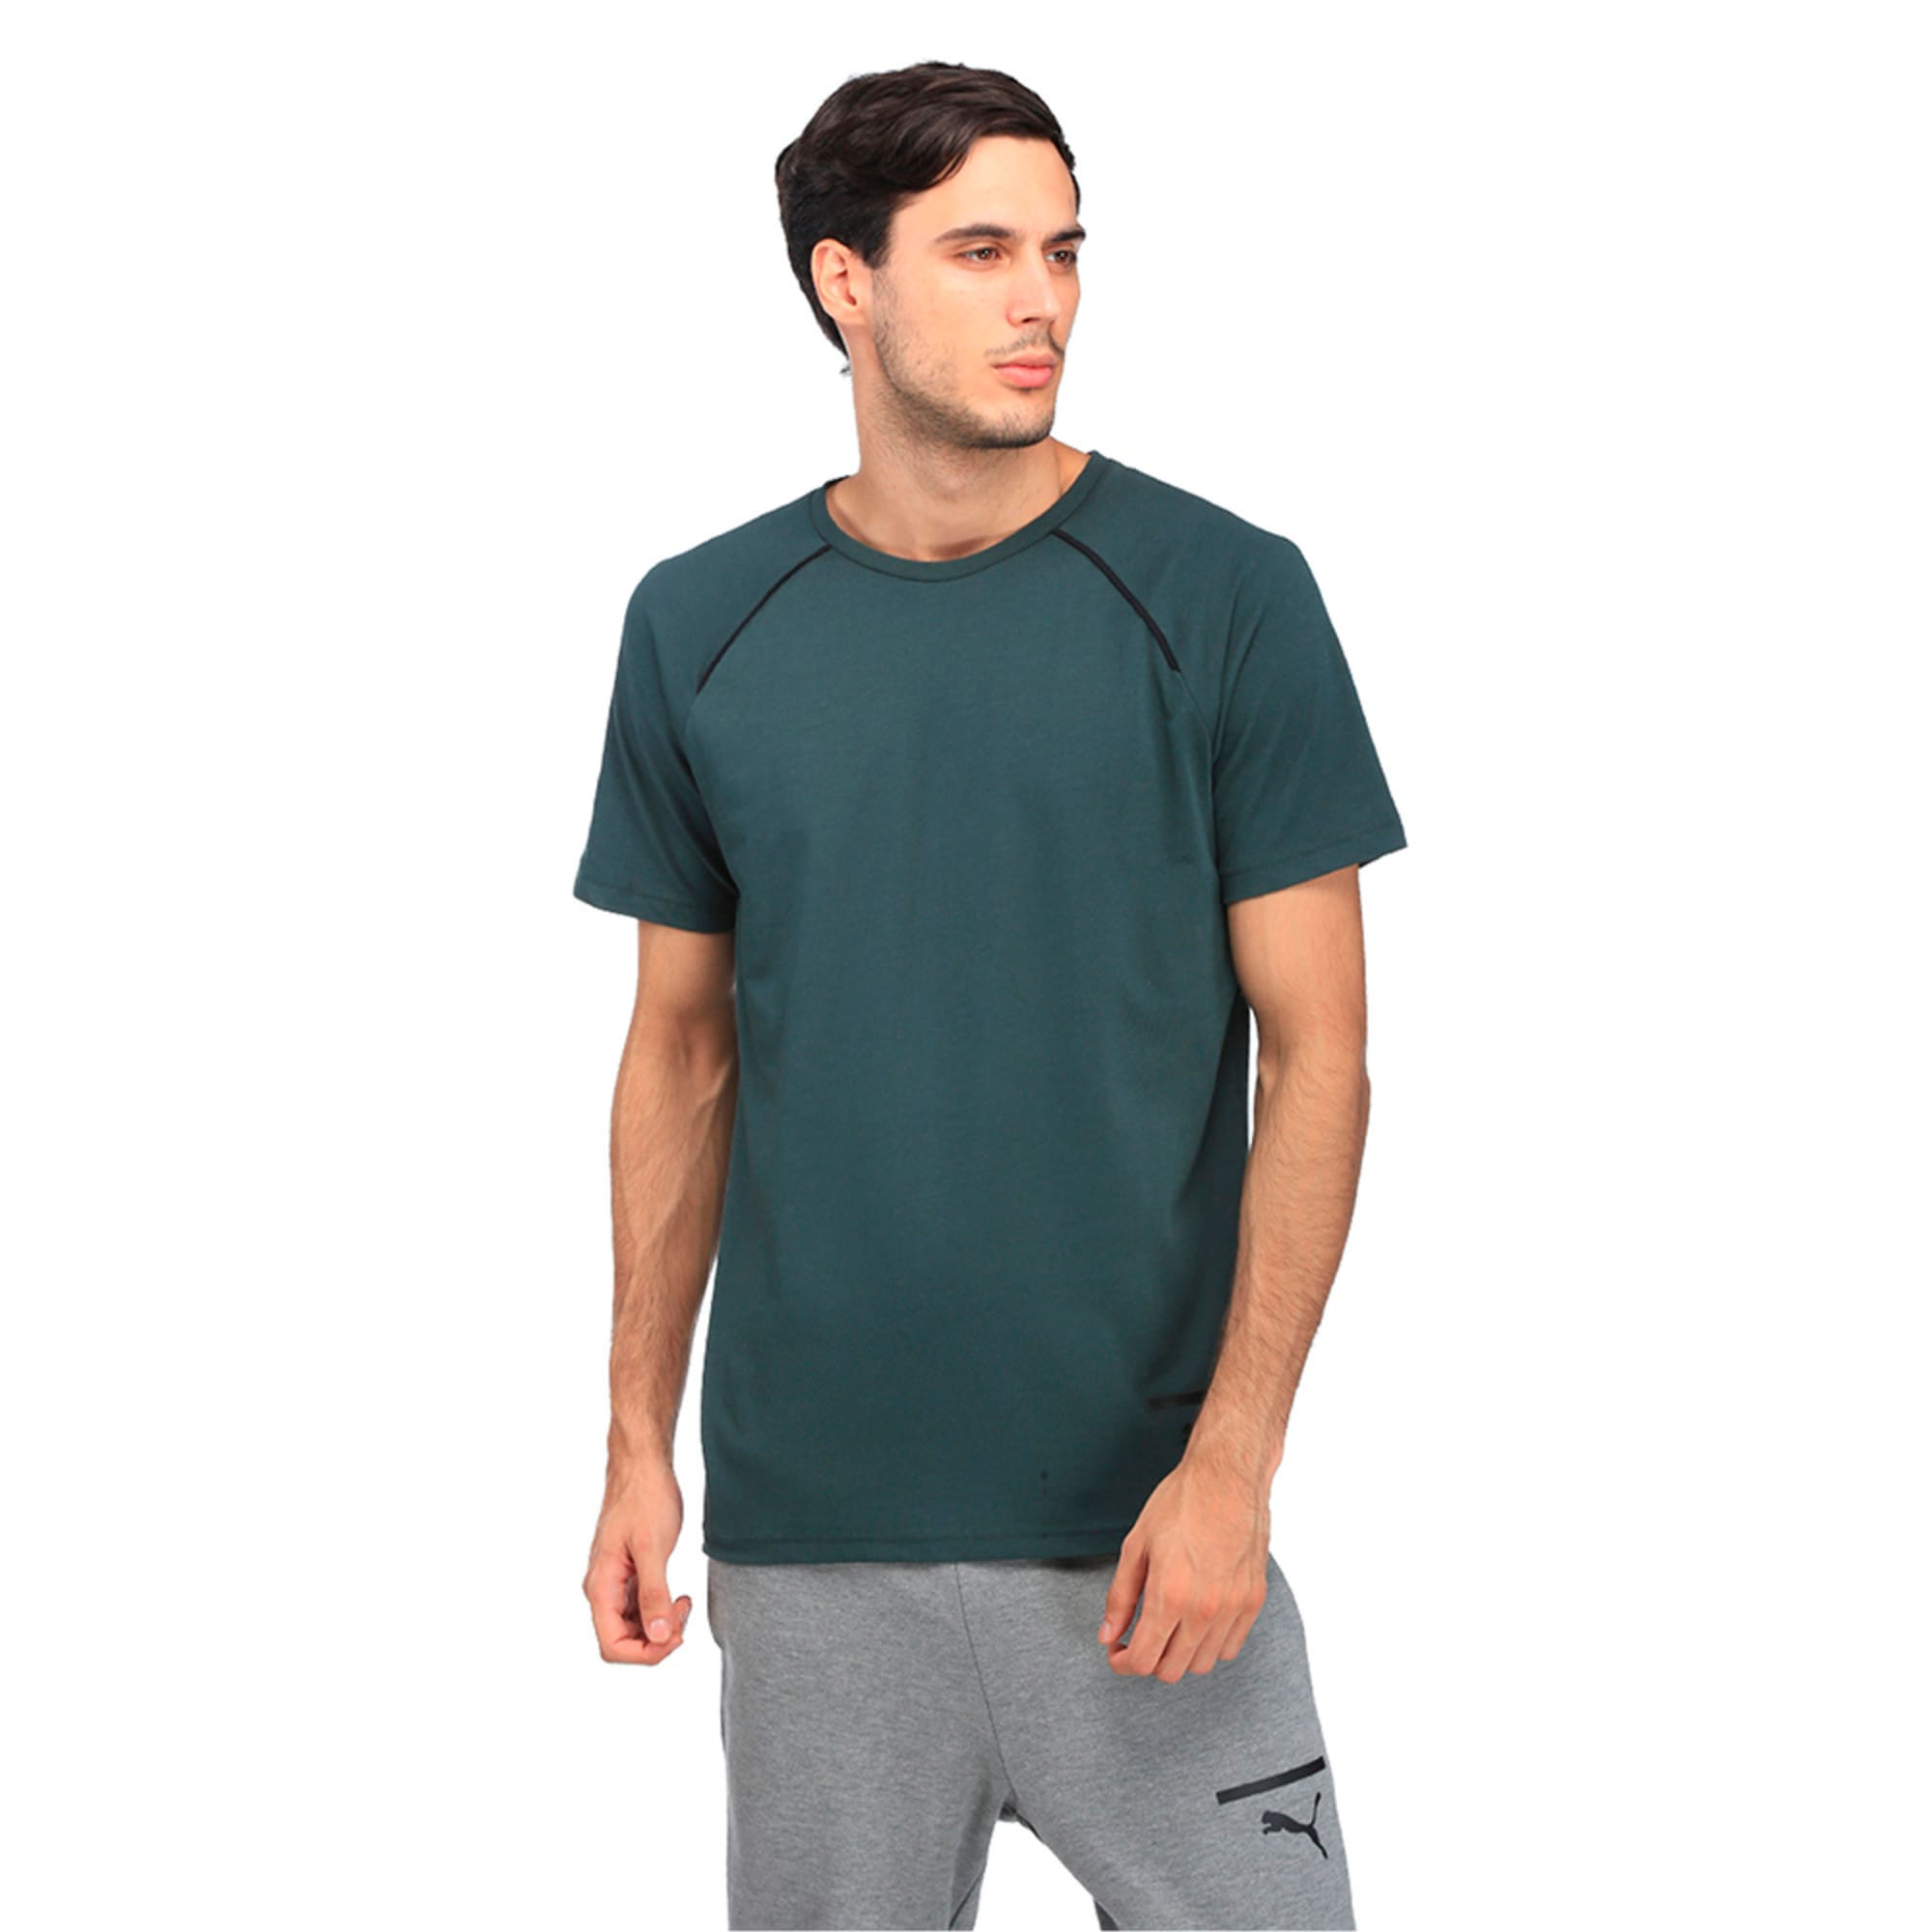 Thumbnail 3 of Evo Core Tee, Green Gables, medium-IND